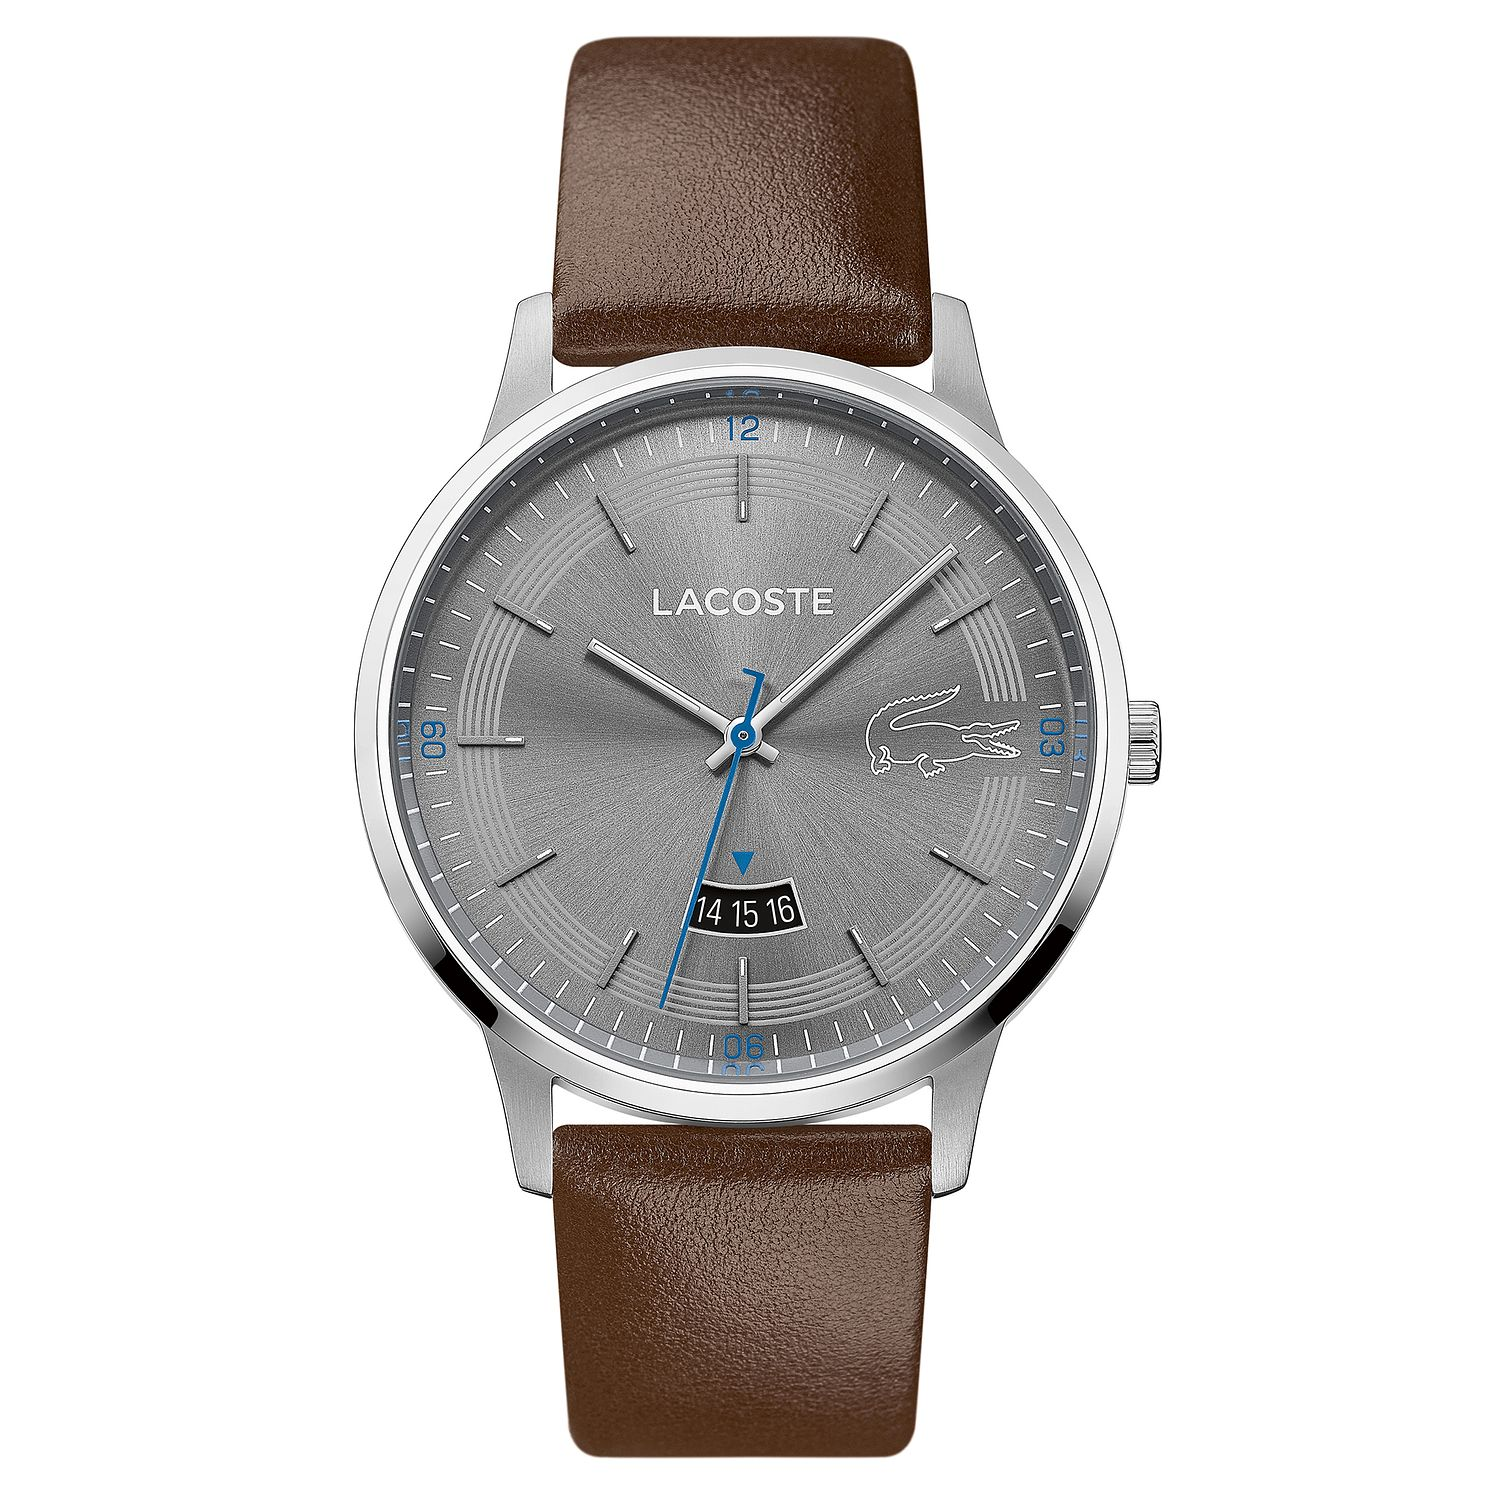 Lacoste Madrid Men's Brown Leather Strap Watch - Product number 5058406